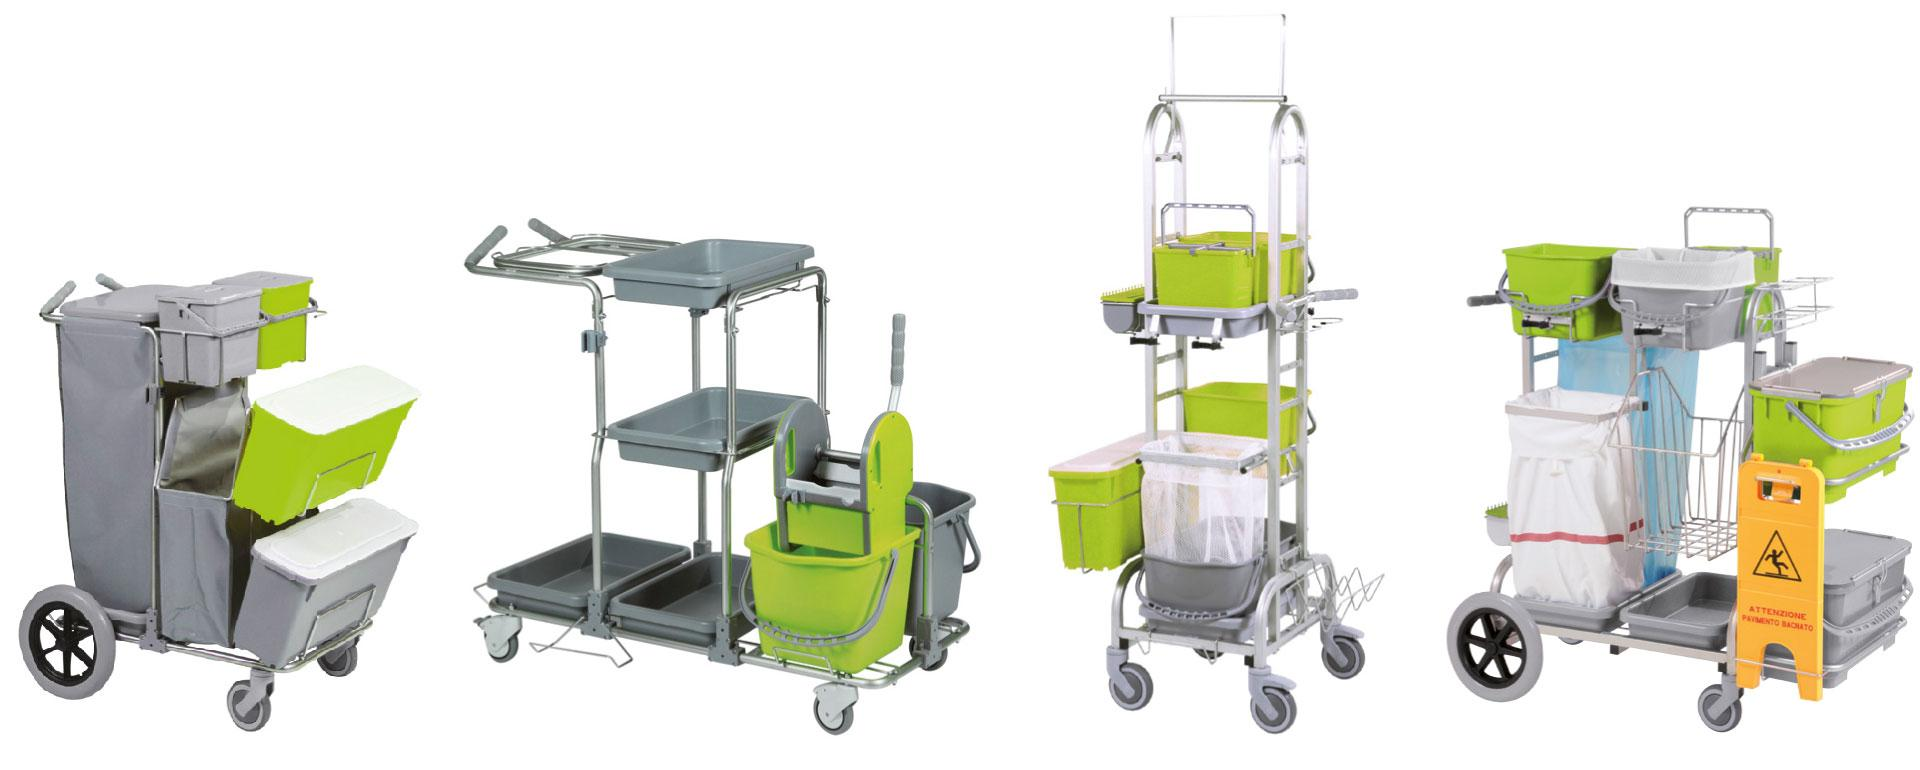 EPD certified cleaning trolleys